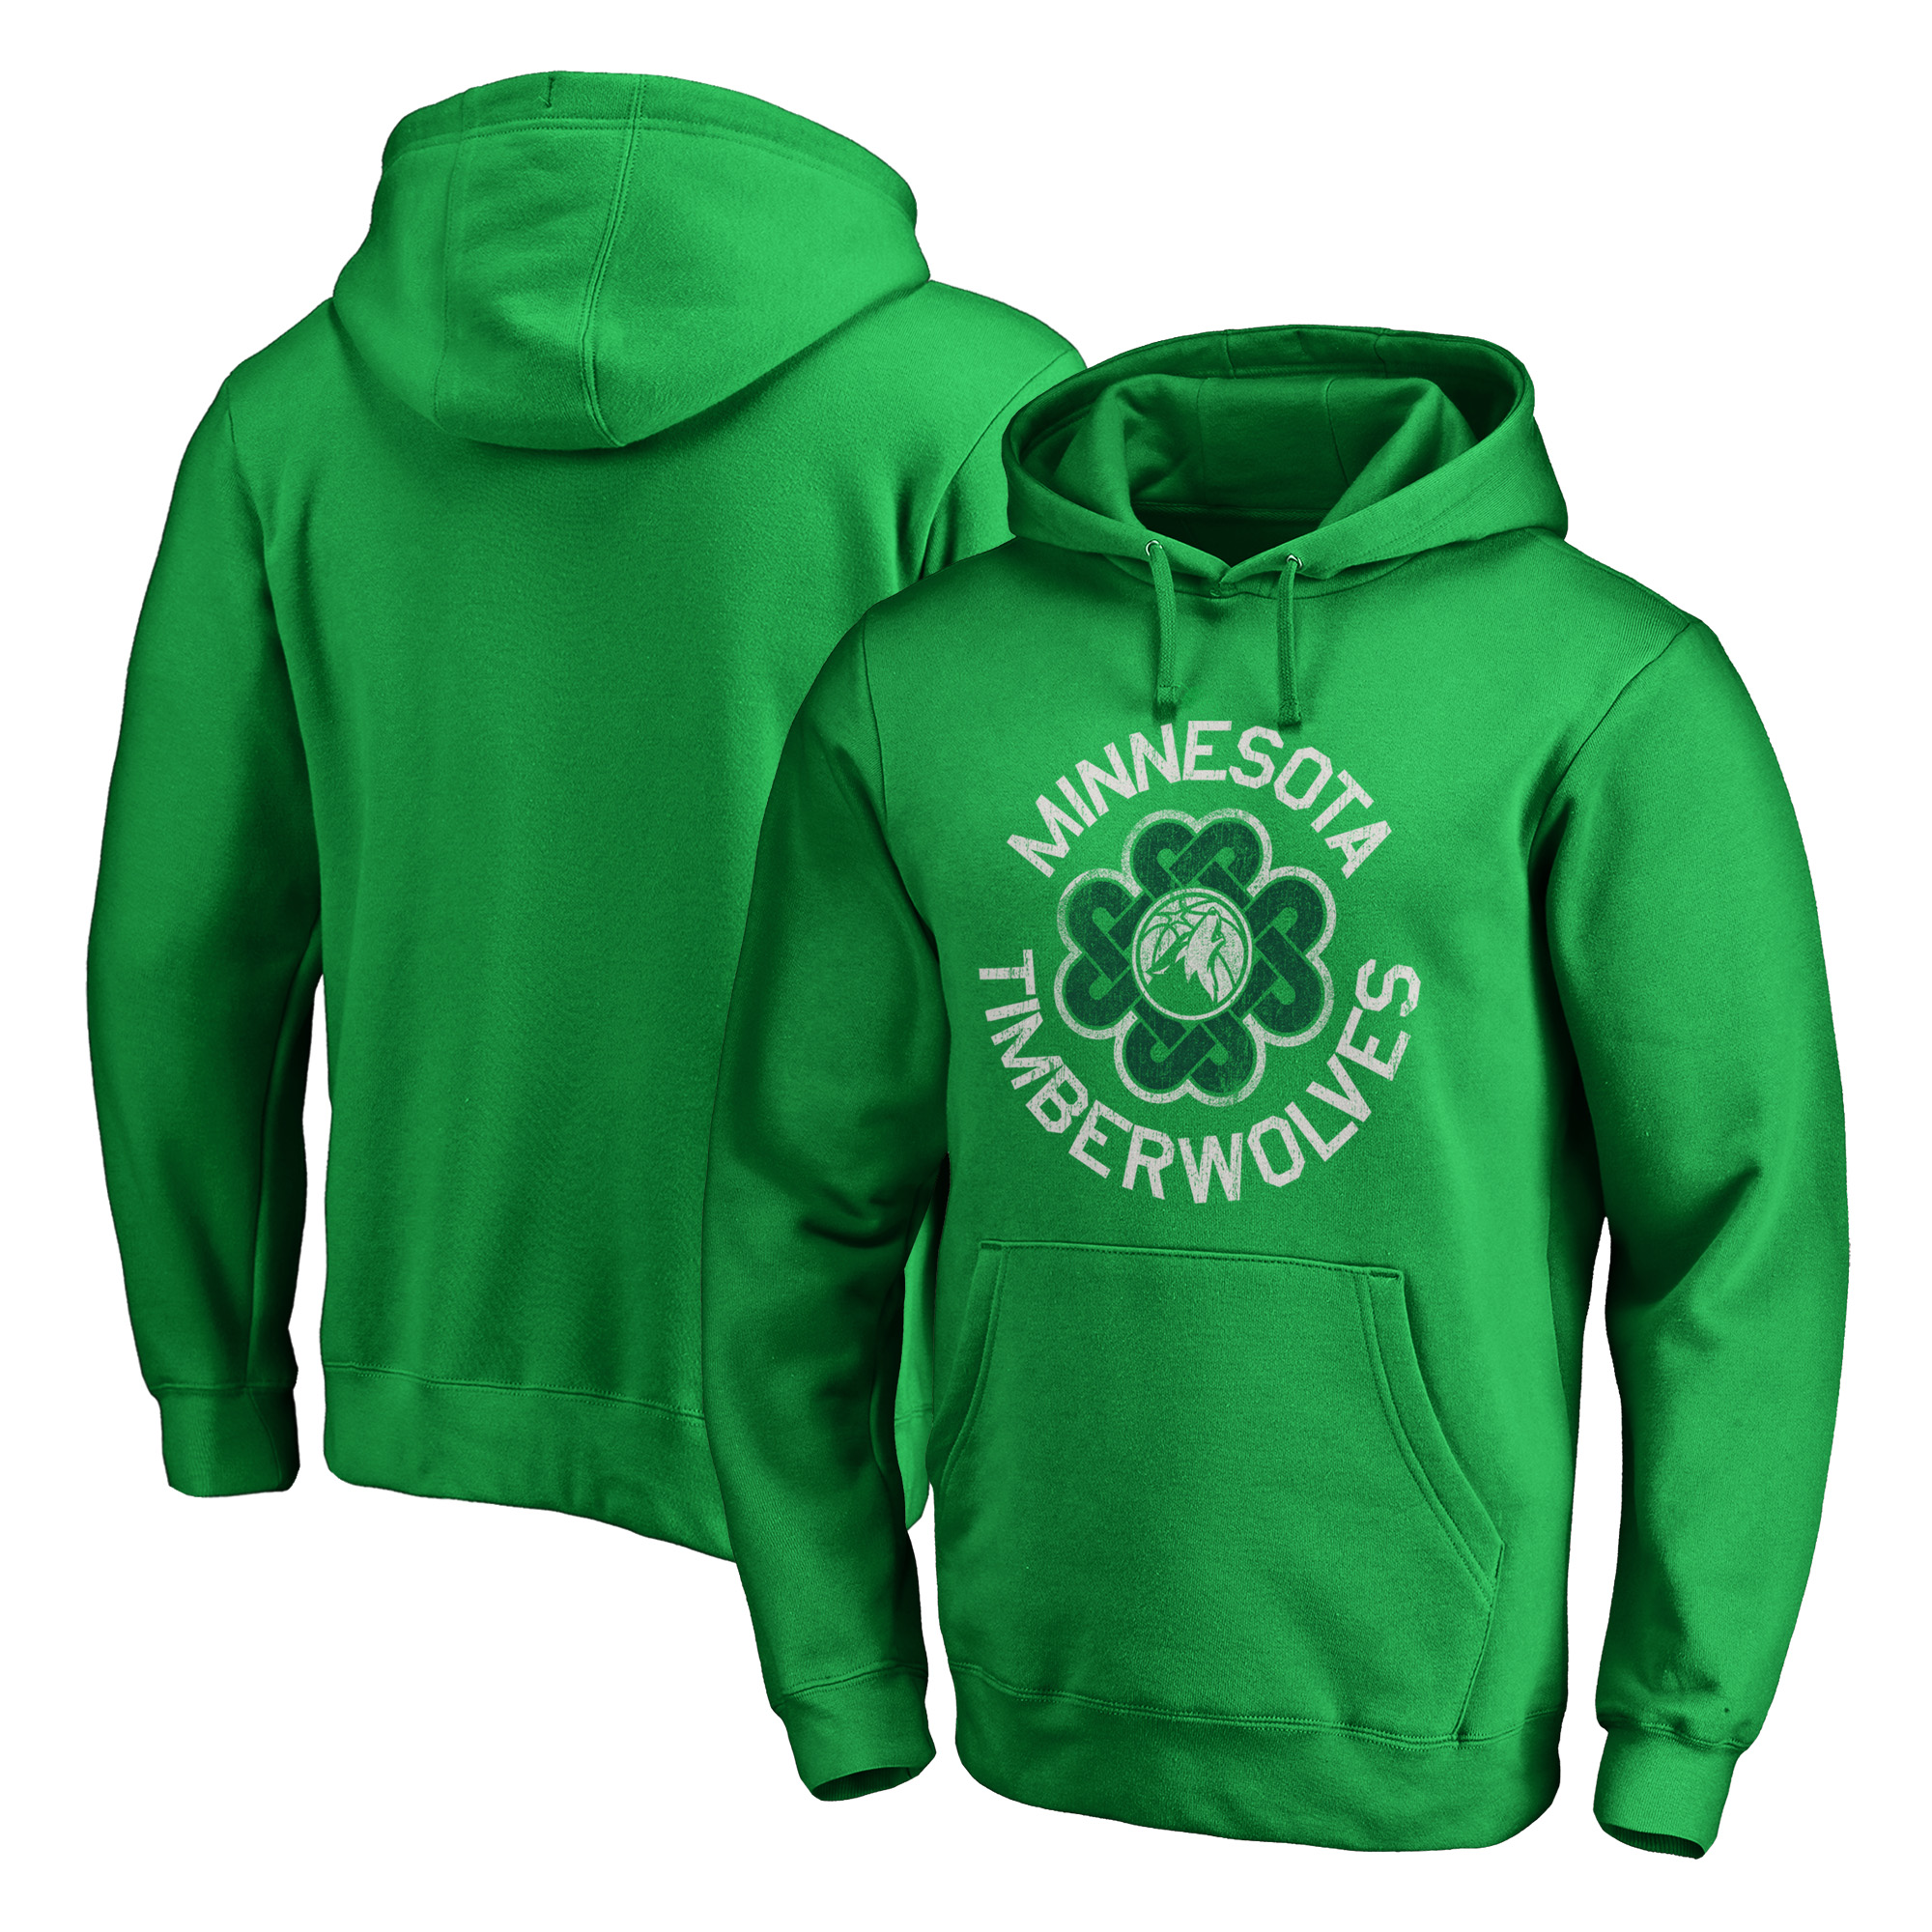 Minnesota Timberwolves Fanatics Branded St. Patrick's Day Luck Tradition Pullover Hoodie - Kelly Green